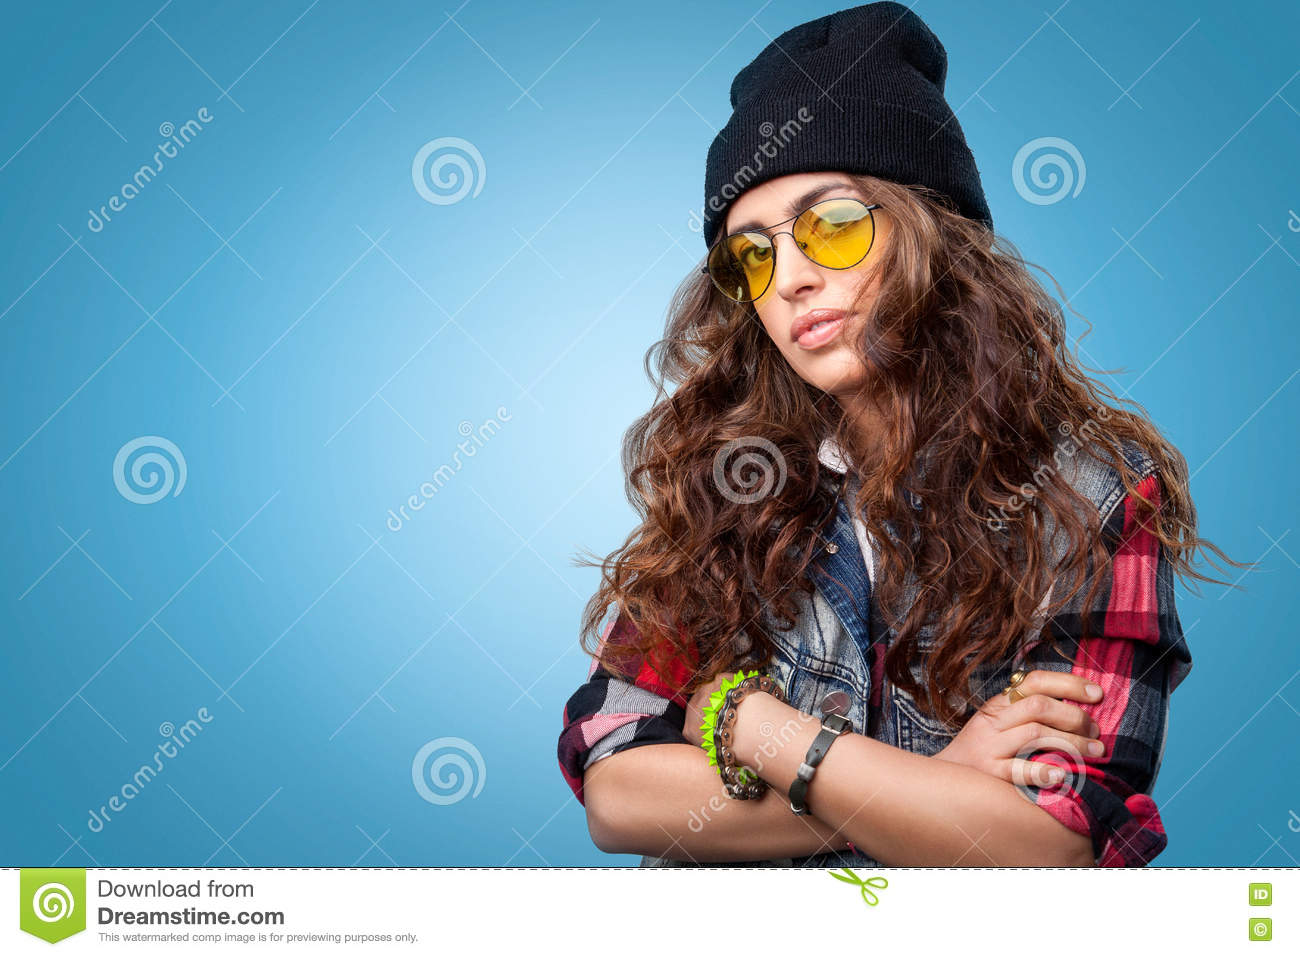 Cute Hipster Girl With Curly Hair Wearing Black Beanie Hat Posing At The Camera With Crossed Arms Stock Image Image Of Jeans Fashion 70882755